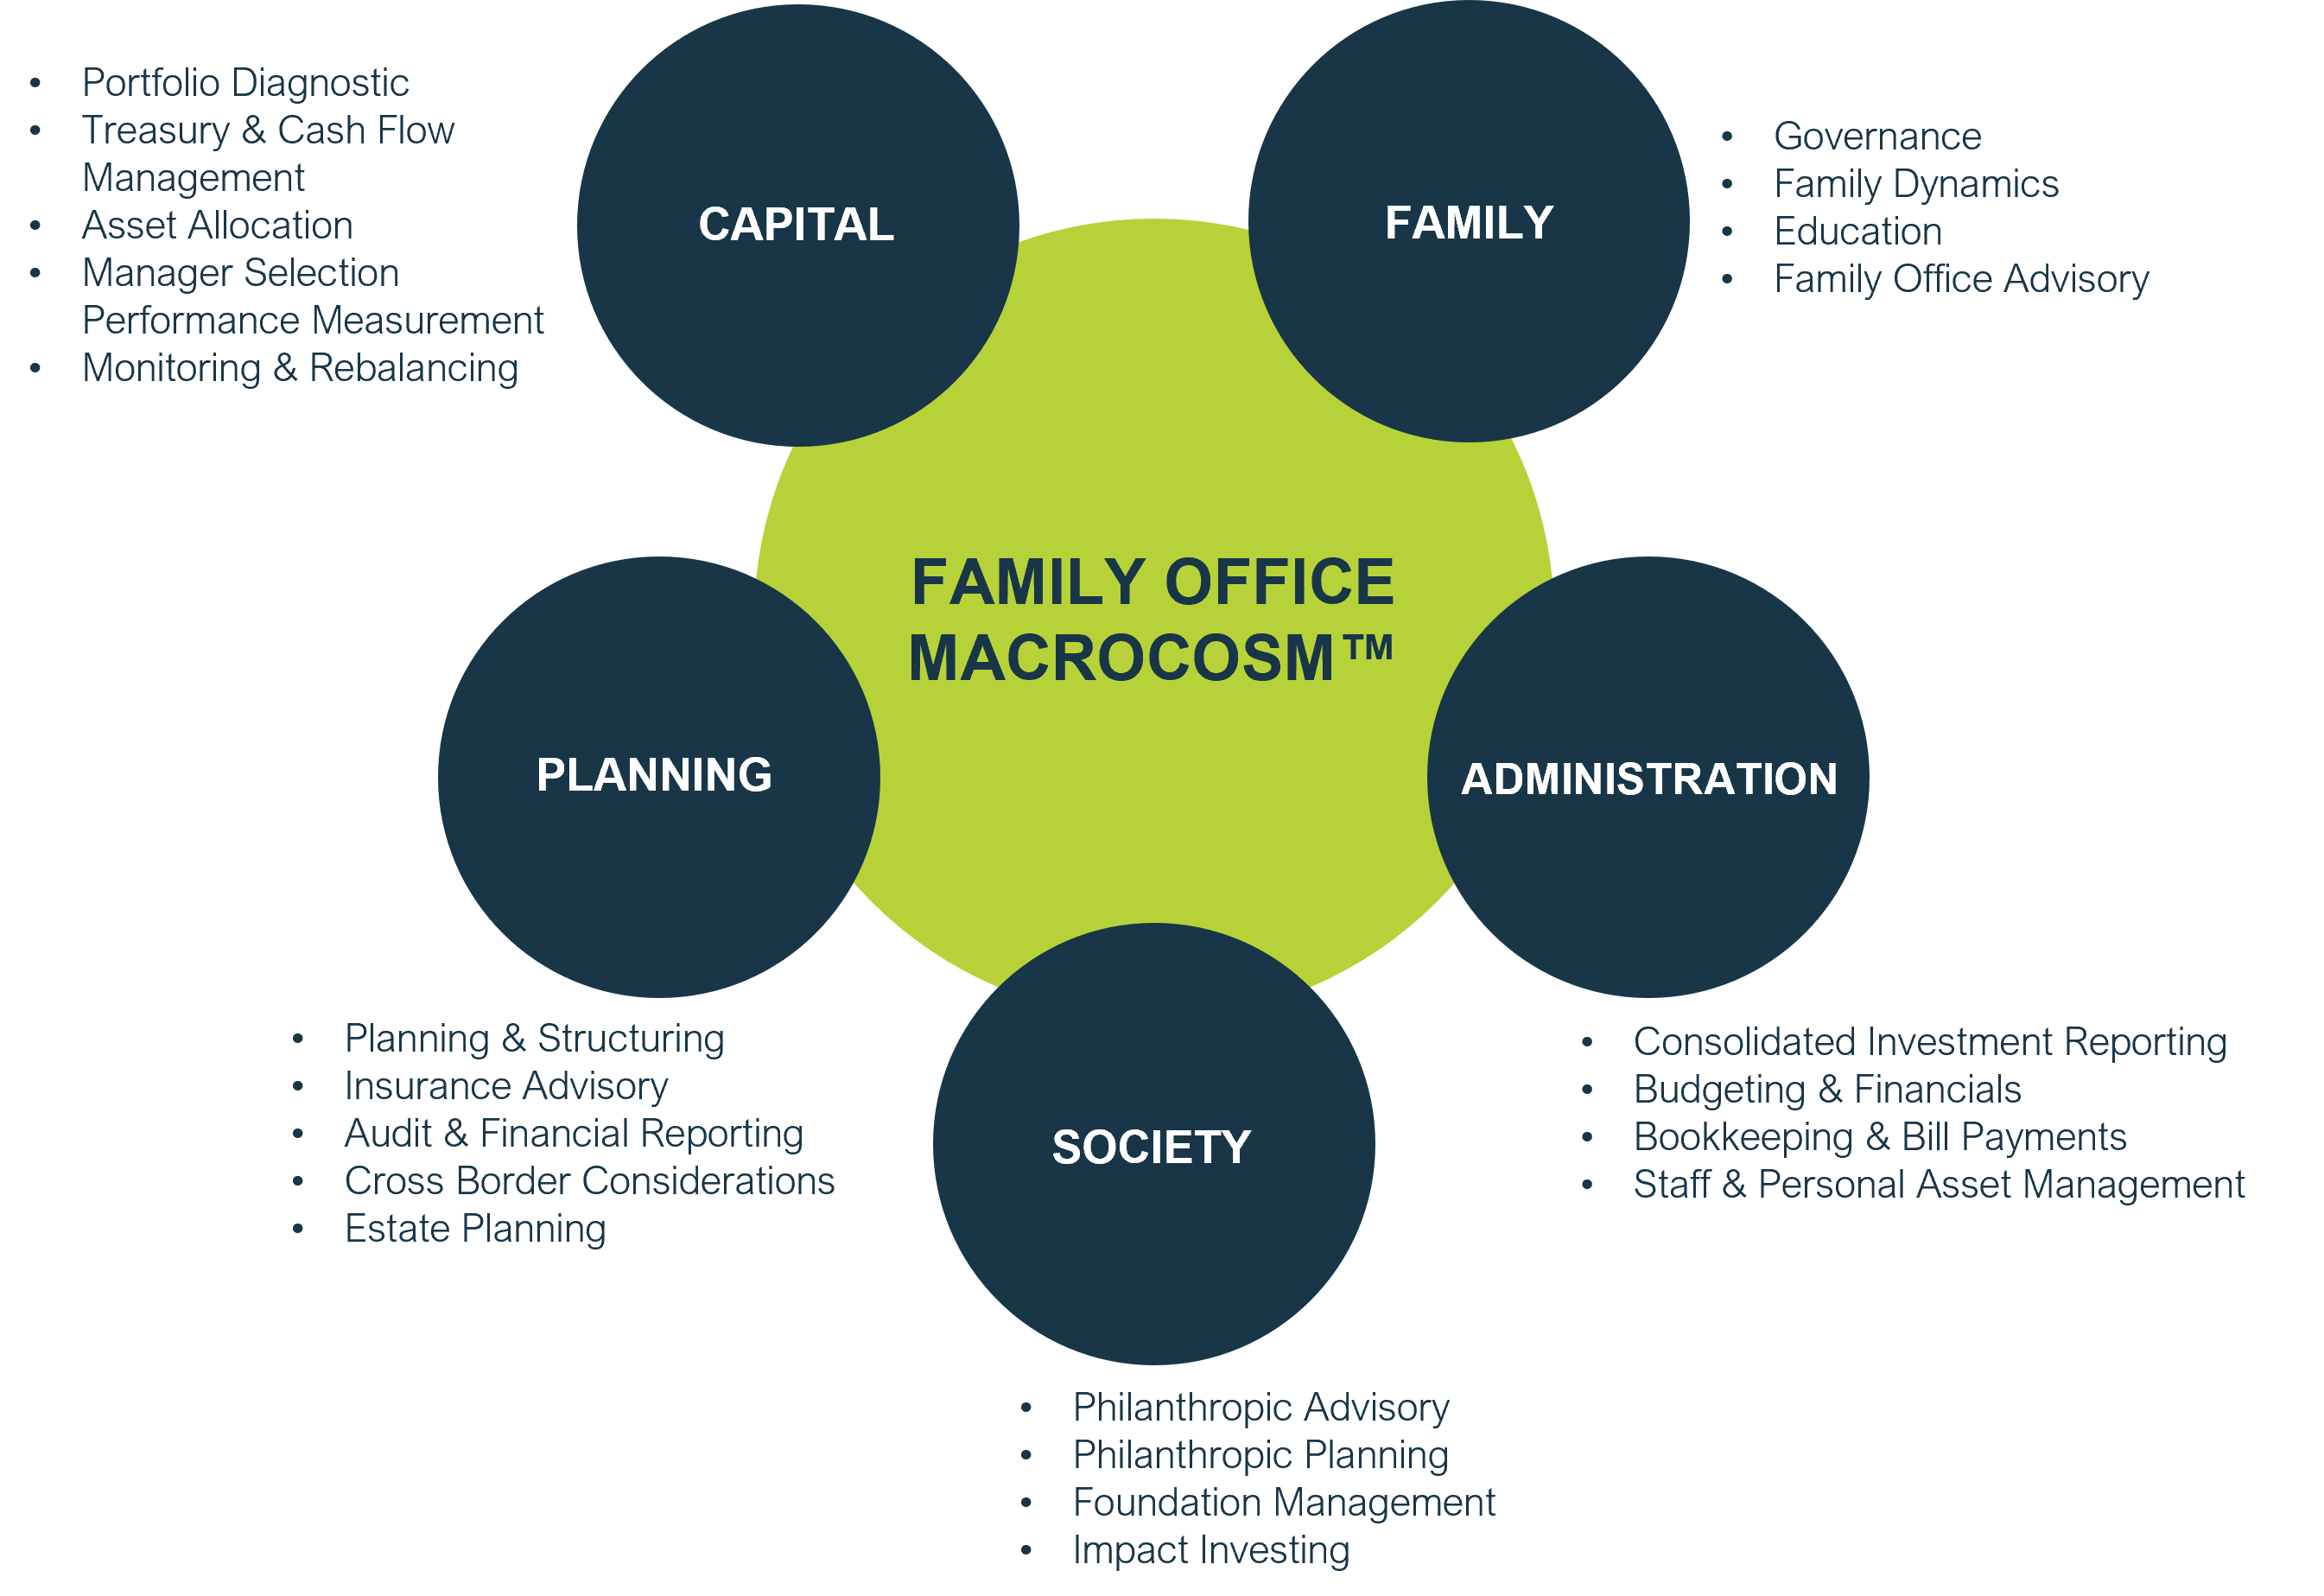 """green circle with """"Family Office Macrocosm"""" in the centre and 5 smaller blue circles around it that say """"Family"""", """"Administration"""", """"Society"""", """"Planning"""" and """"Capital"""""""